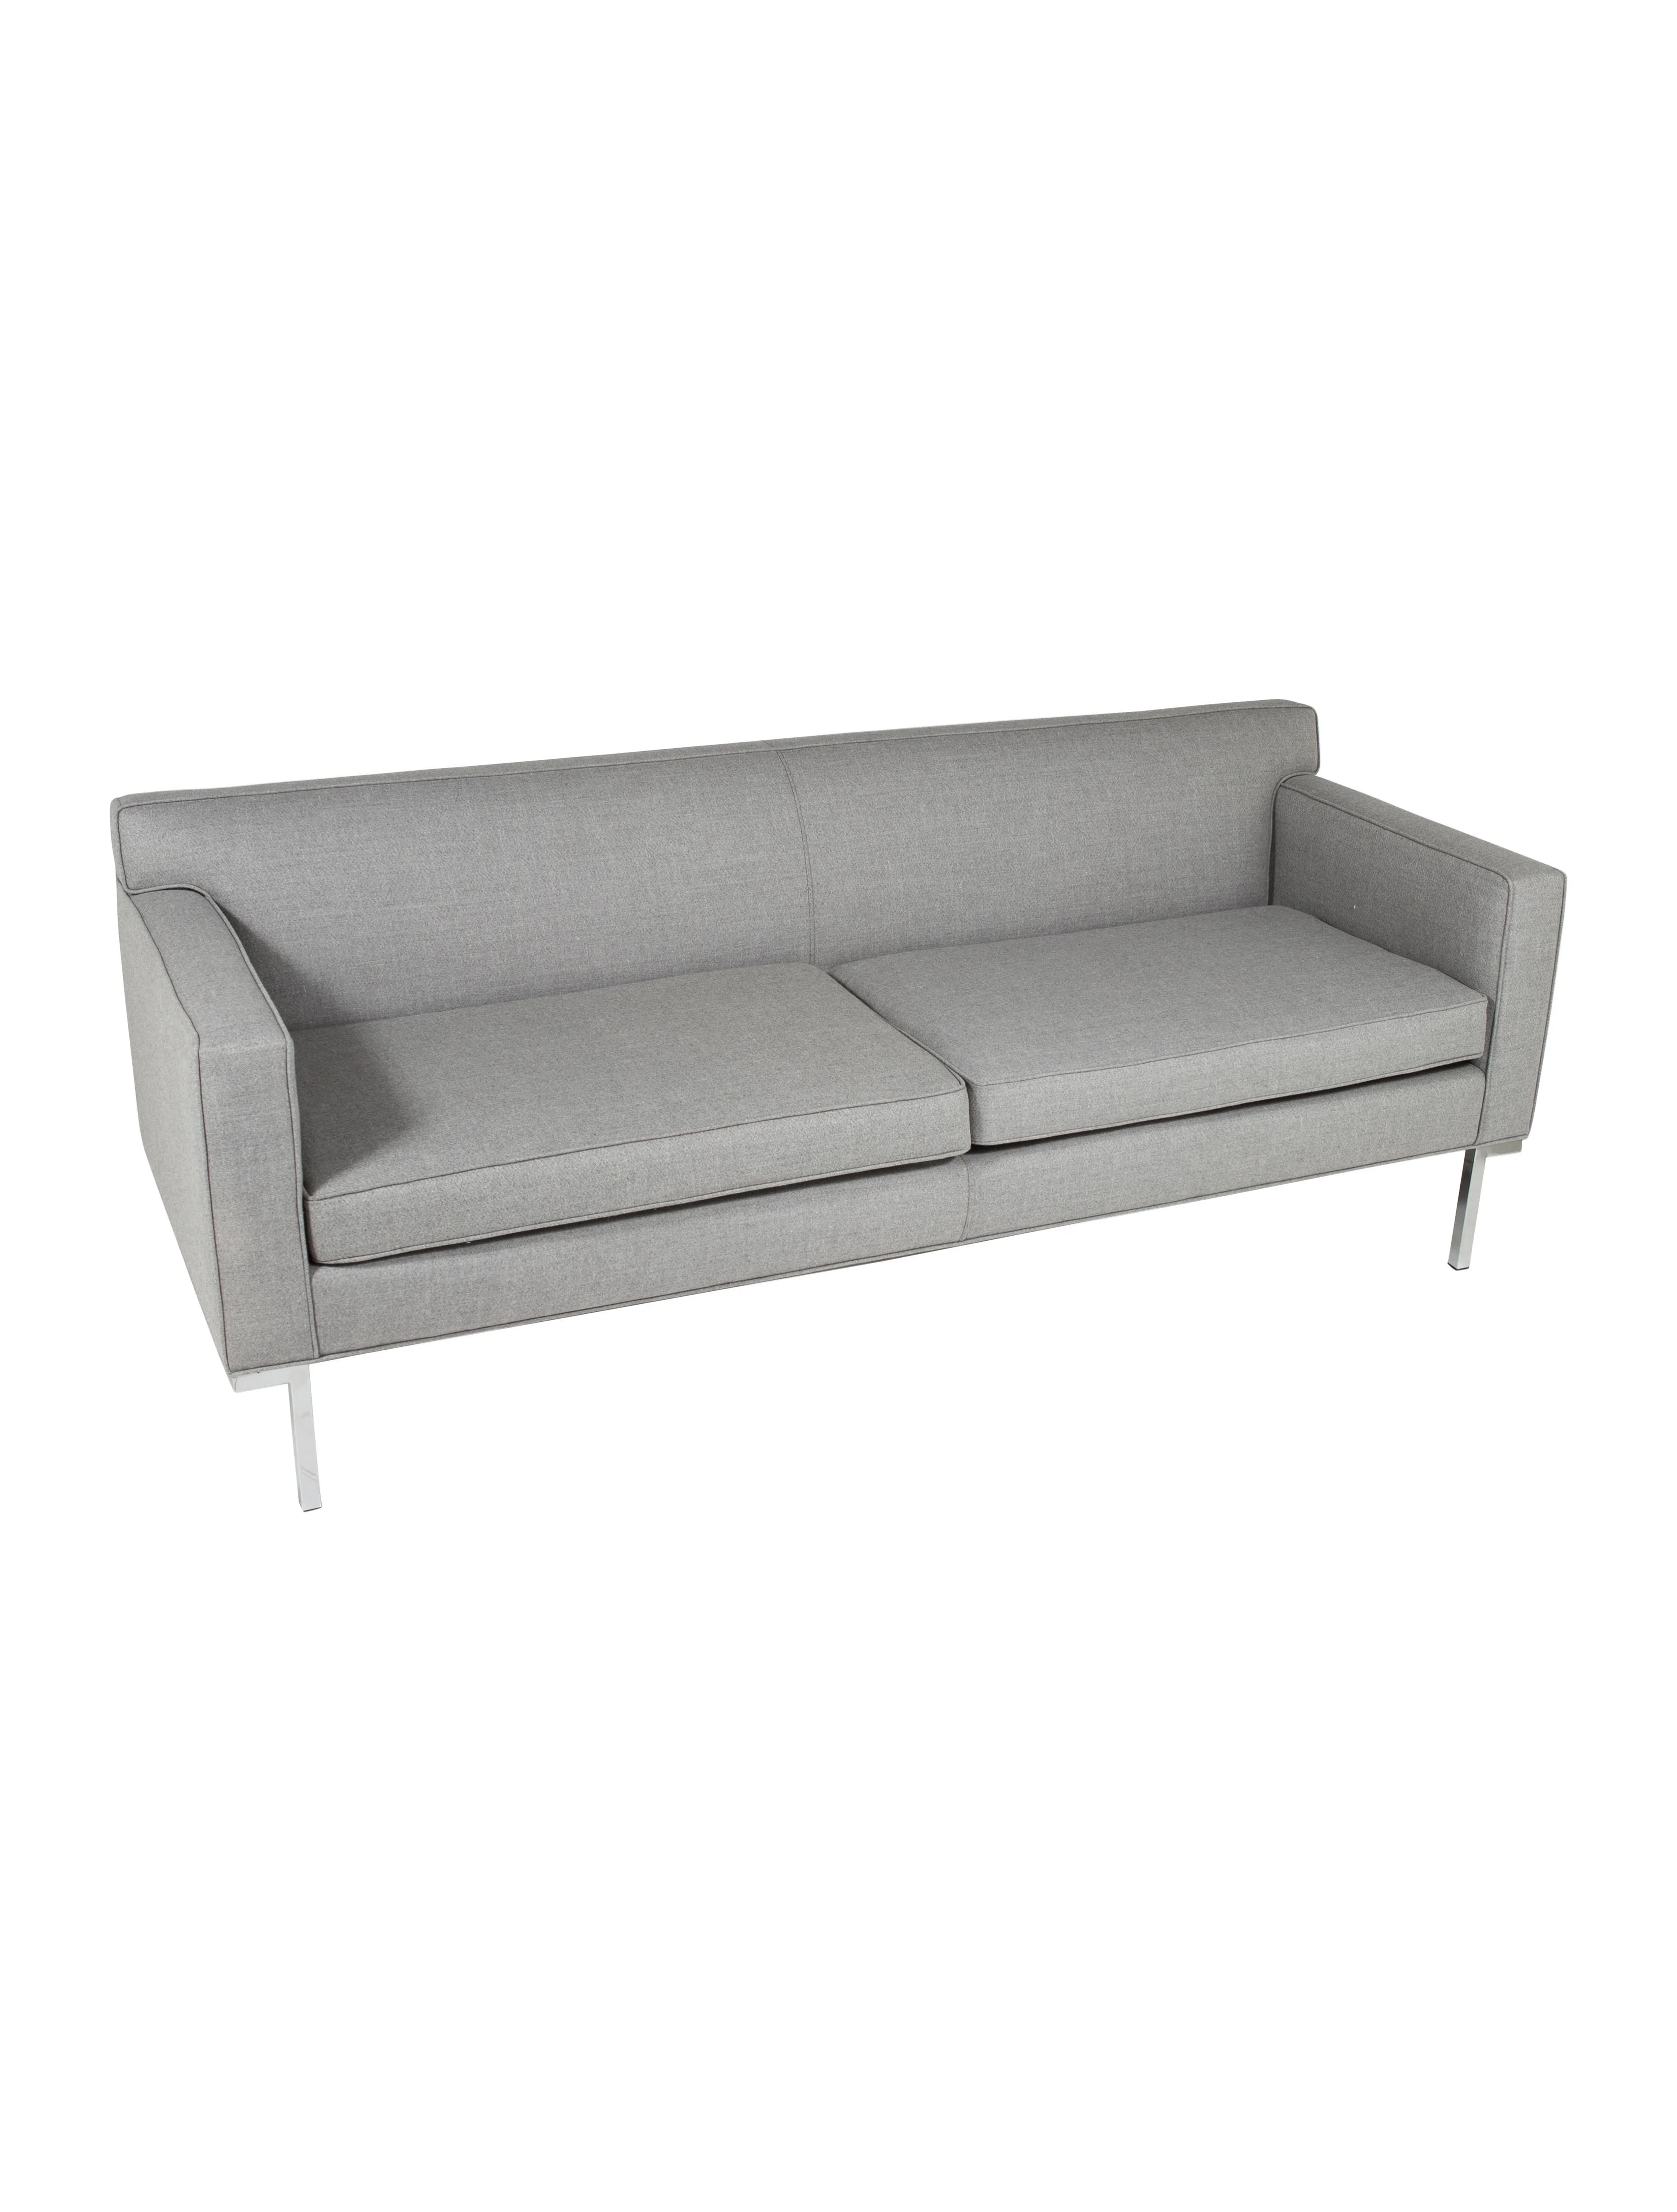 dwr theatre sofa review second hand set in indore design within reach furniture deswr20026